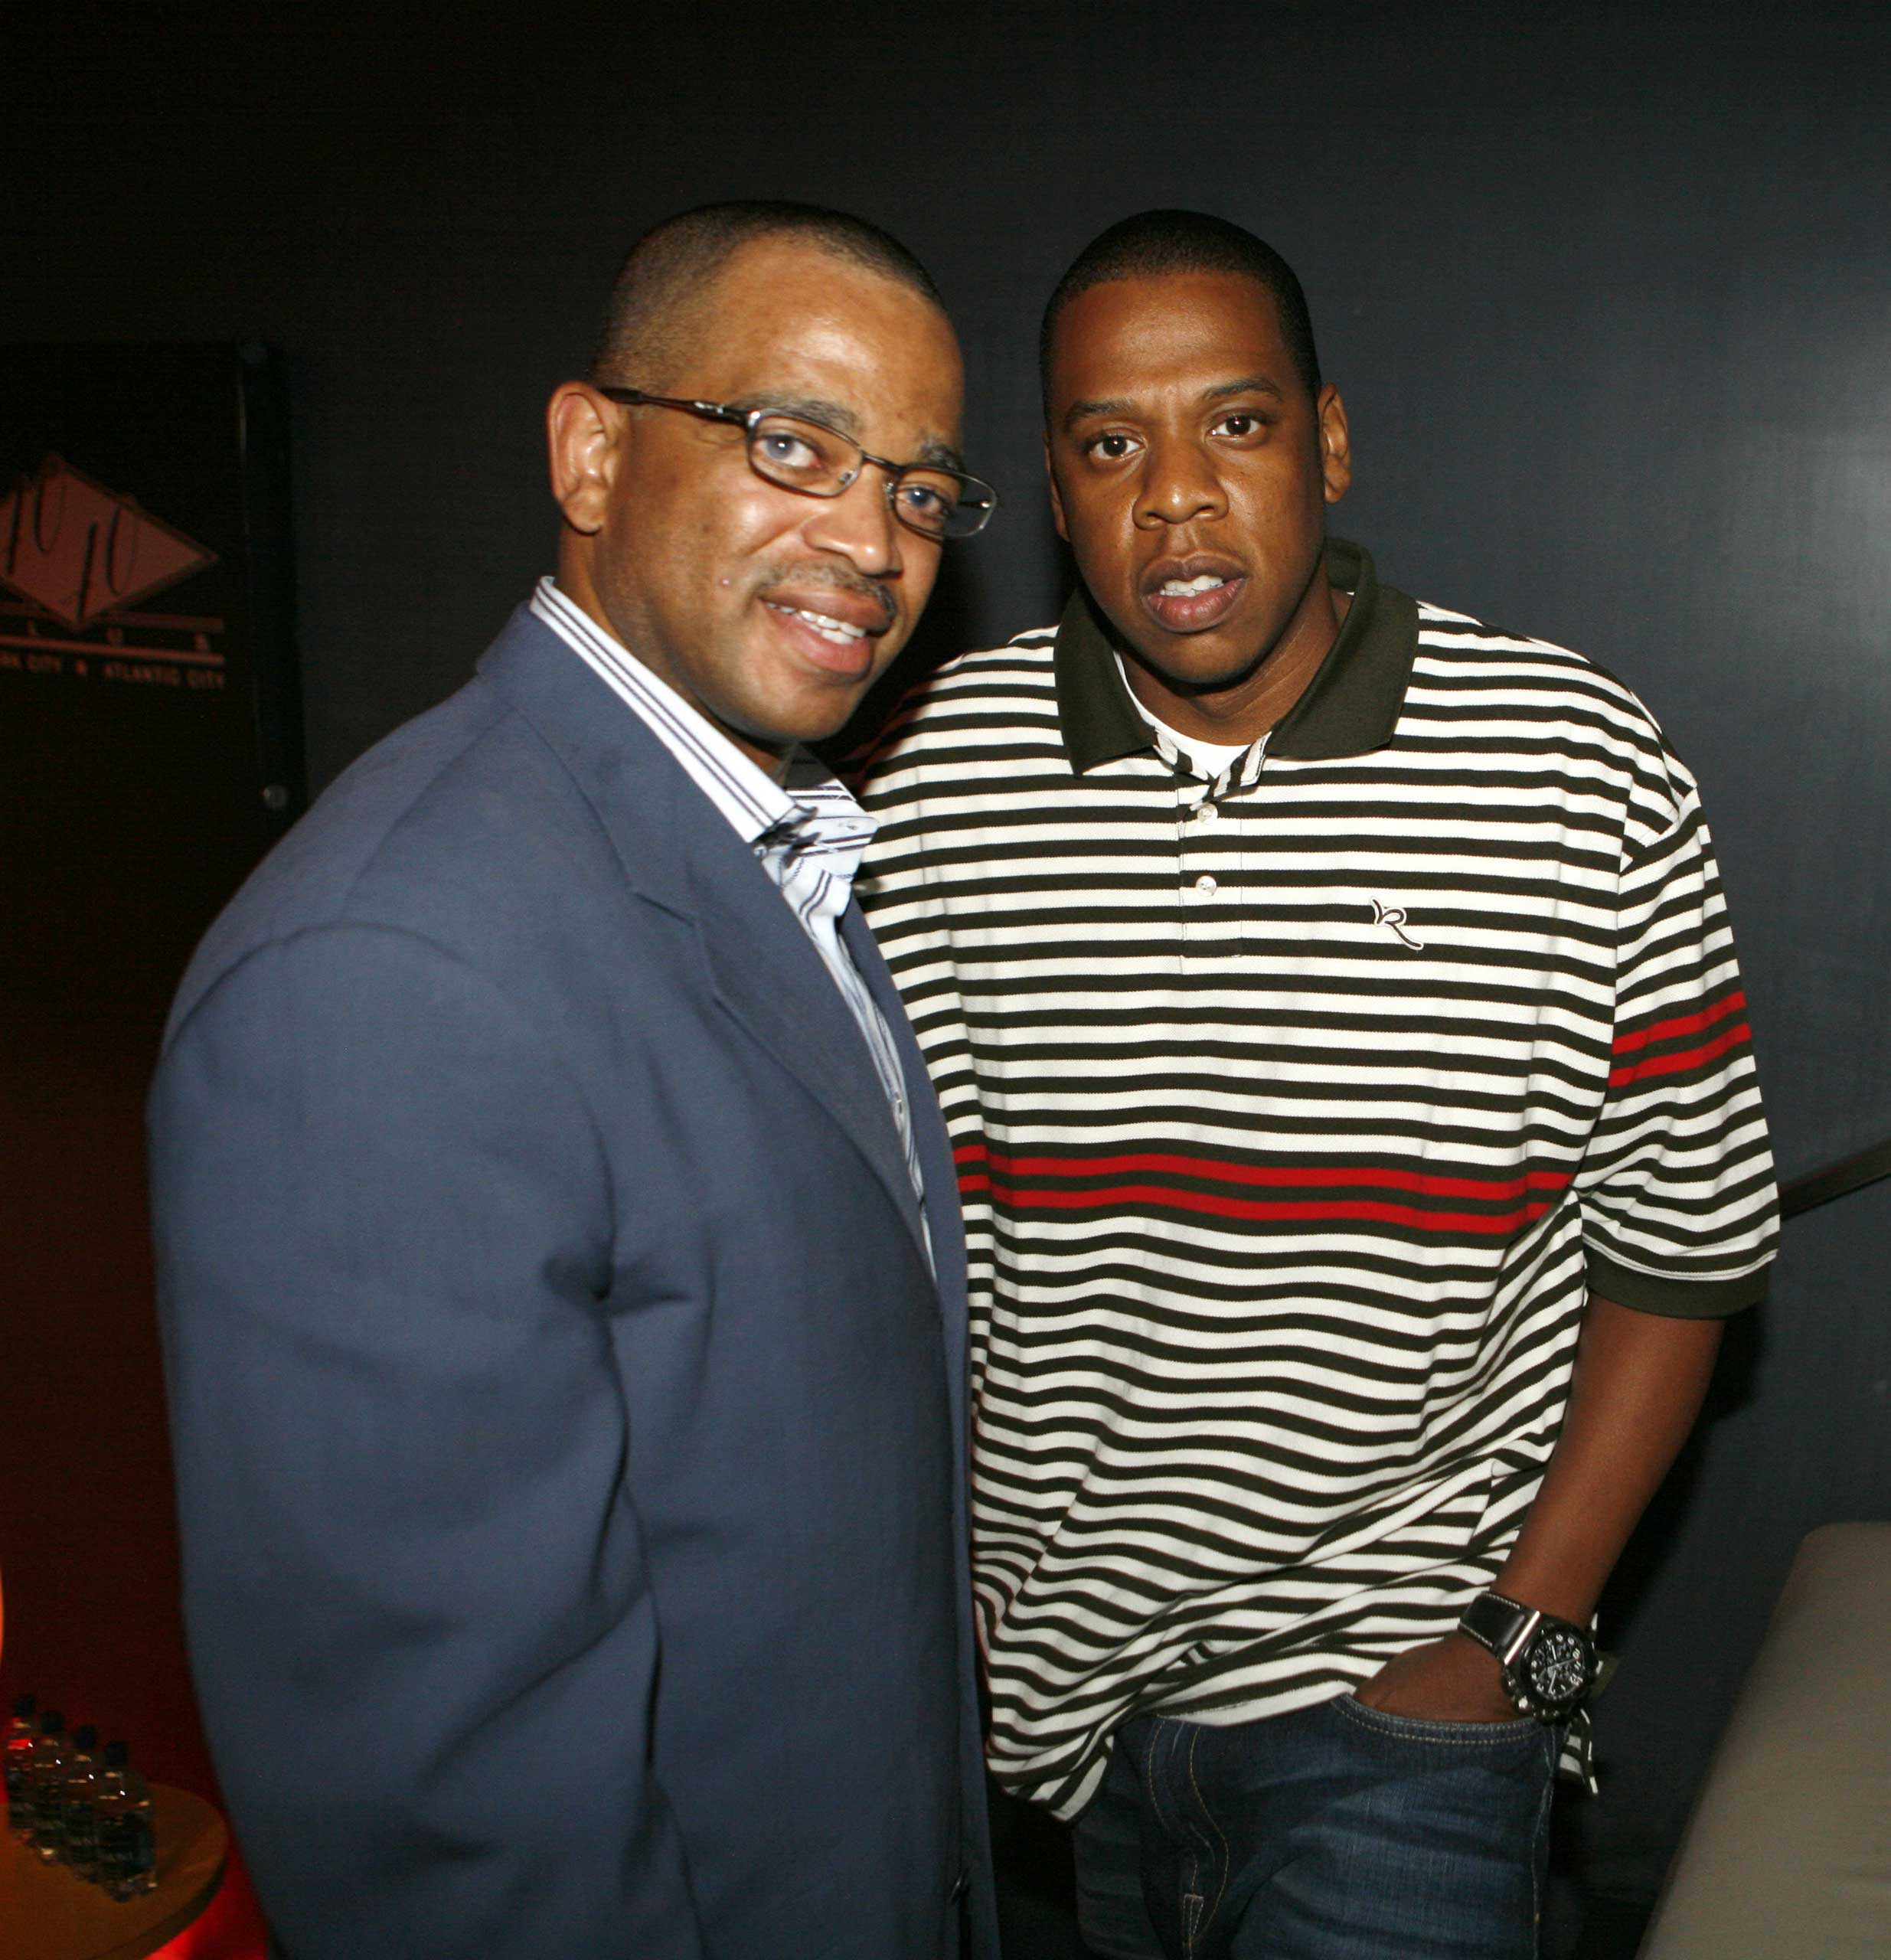 Scott and Jay-Z at the ESPN Desportes Launch Party at The 40/40 Club on May 17, 2006 in New York.